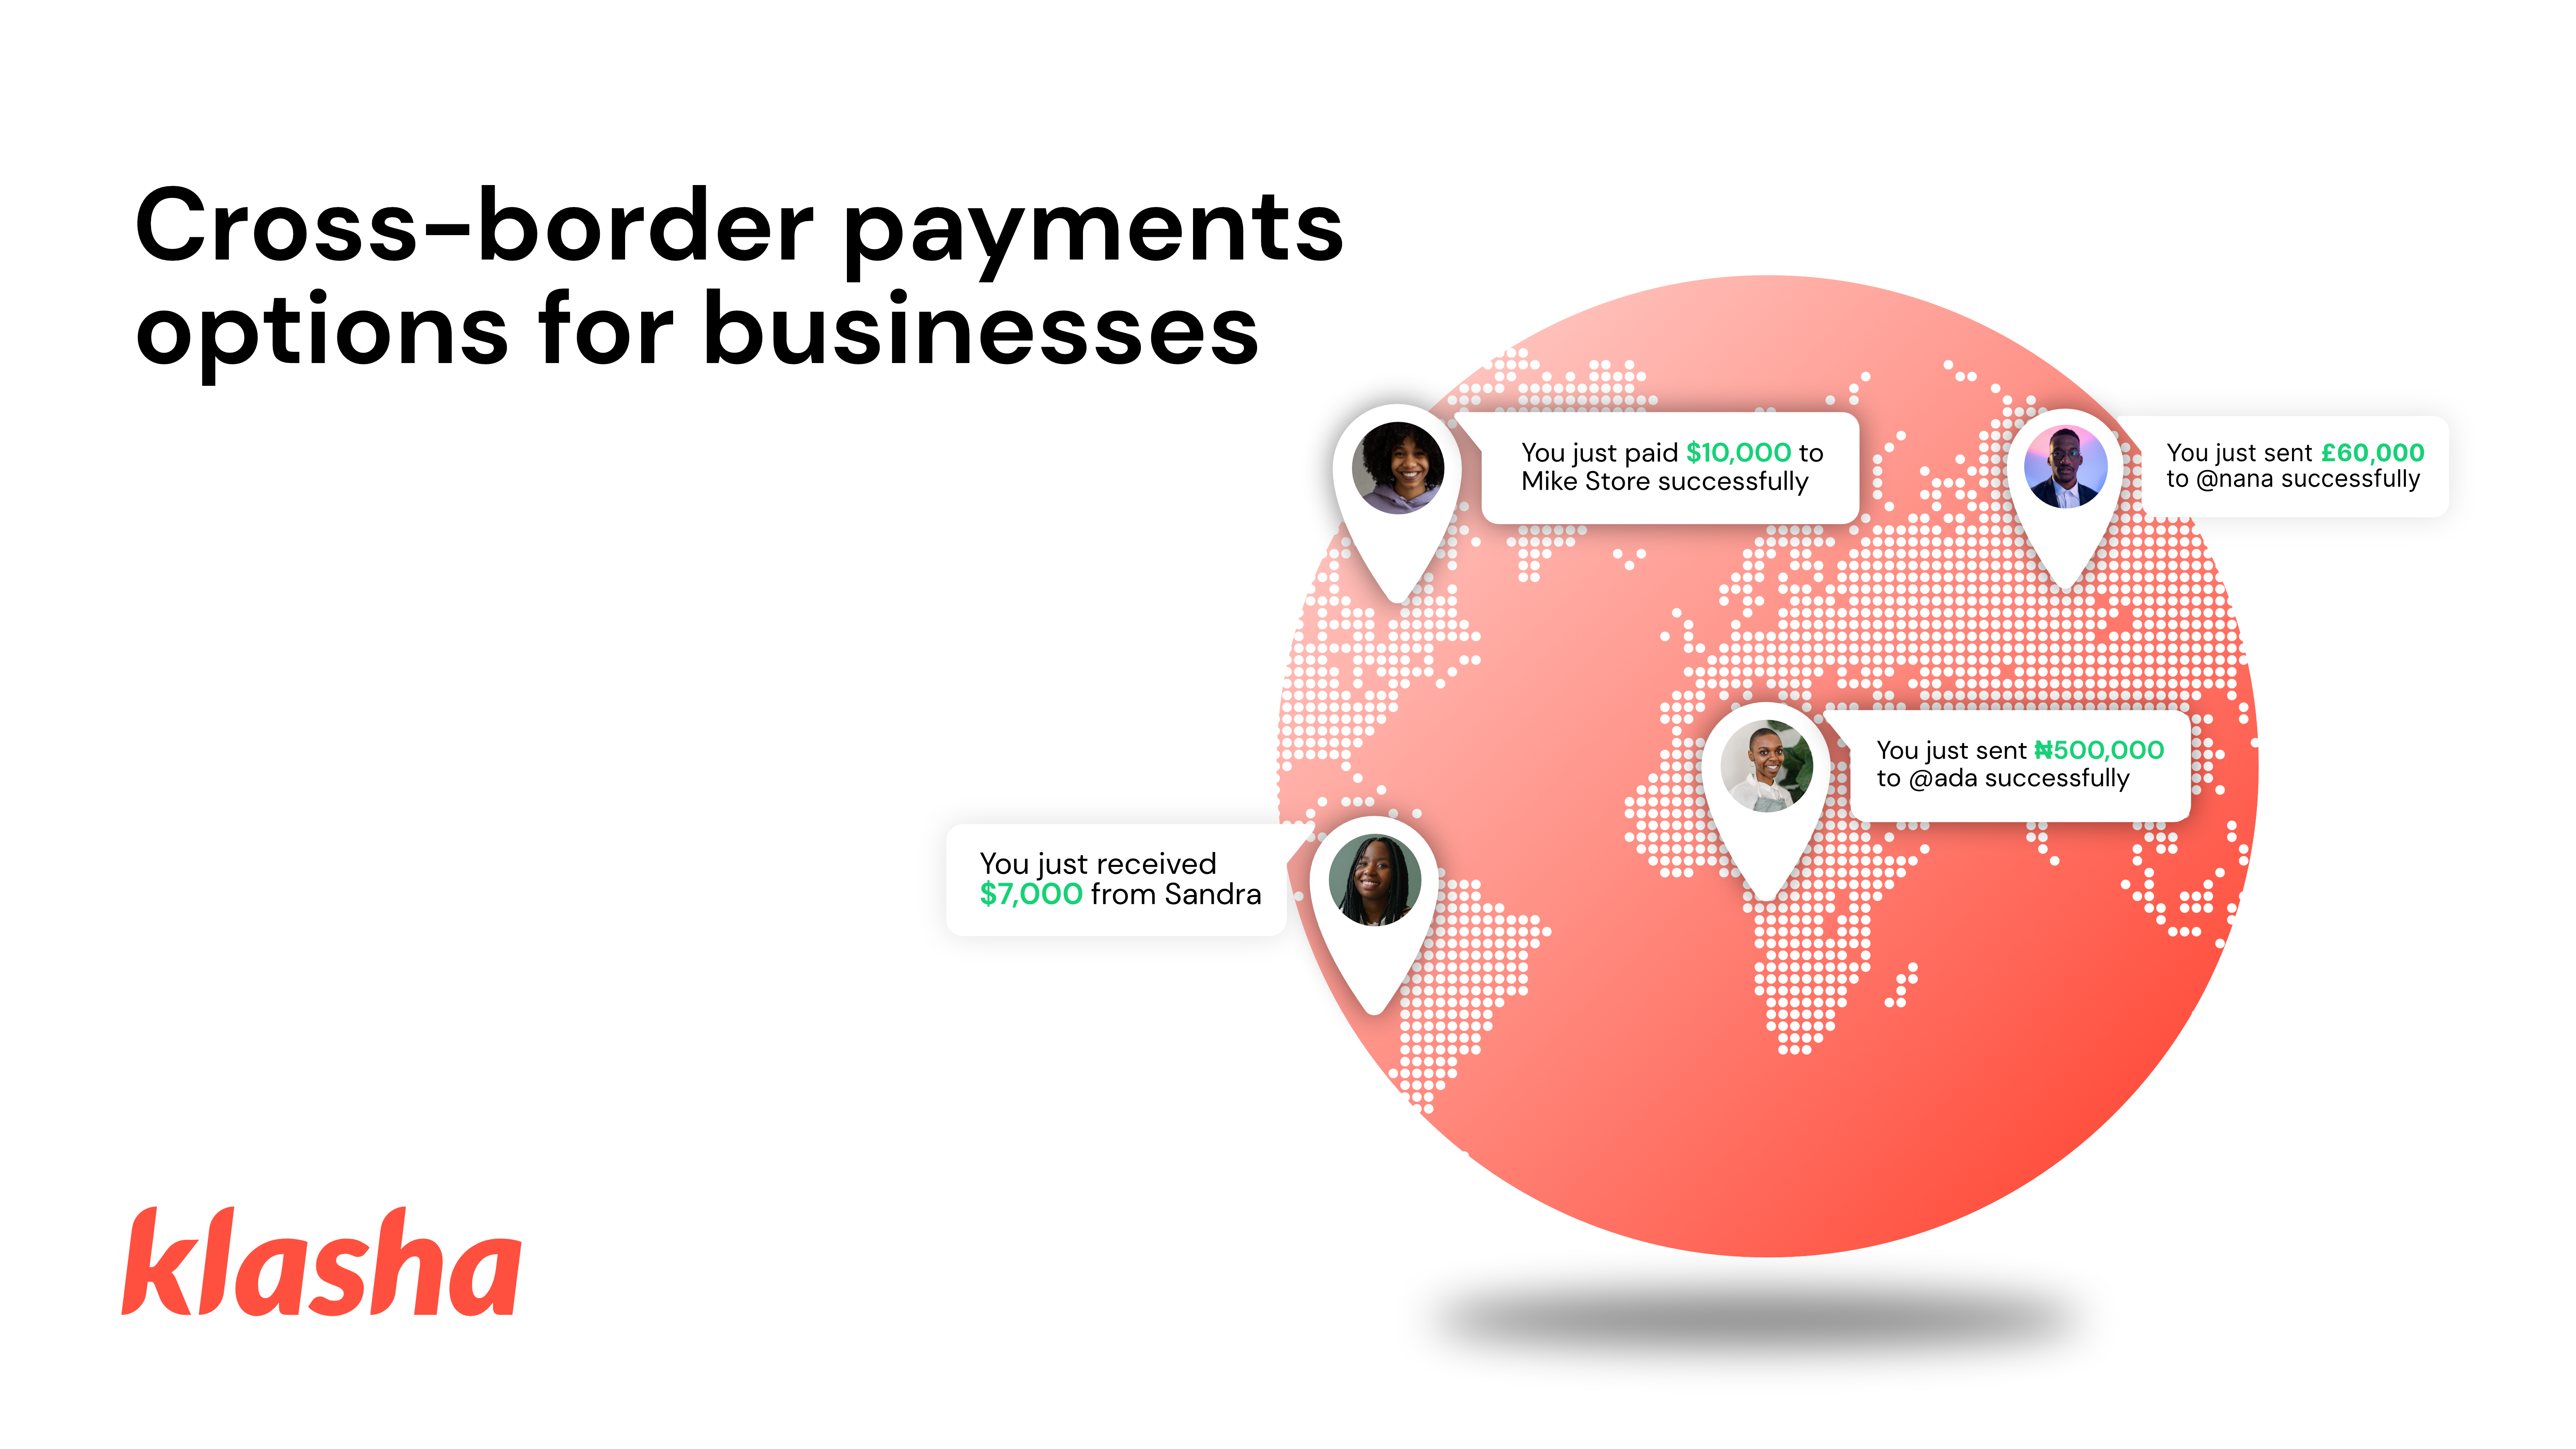 Cross-border payments options for businesses